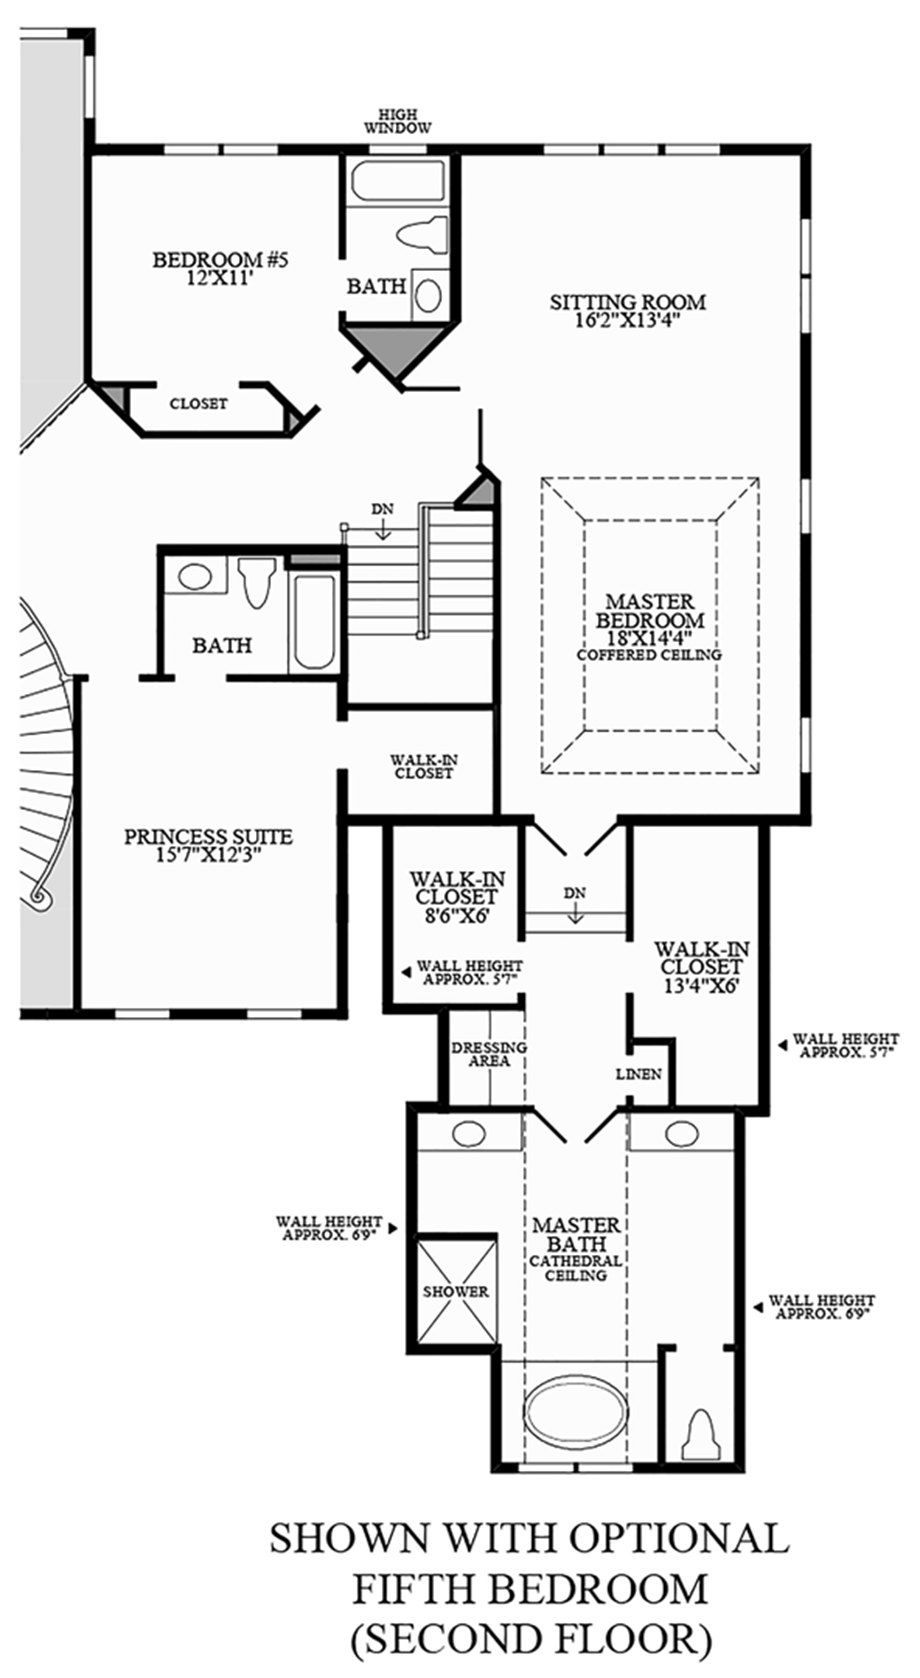 Optional Fifth Bedroom (Second Floor) Floor Plan